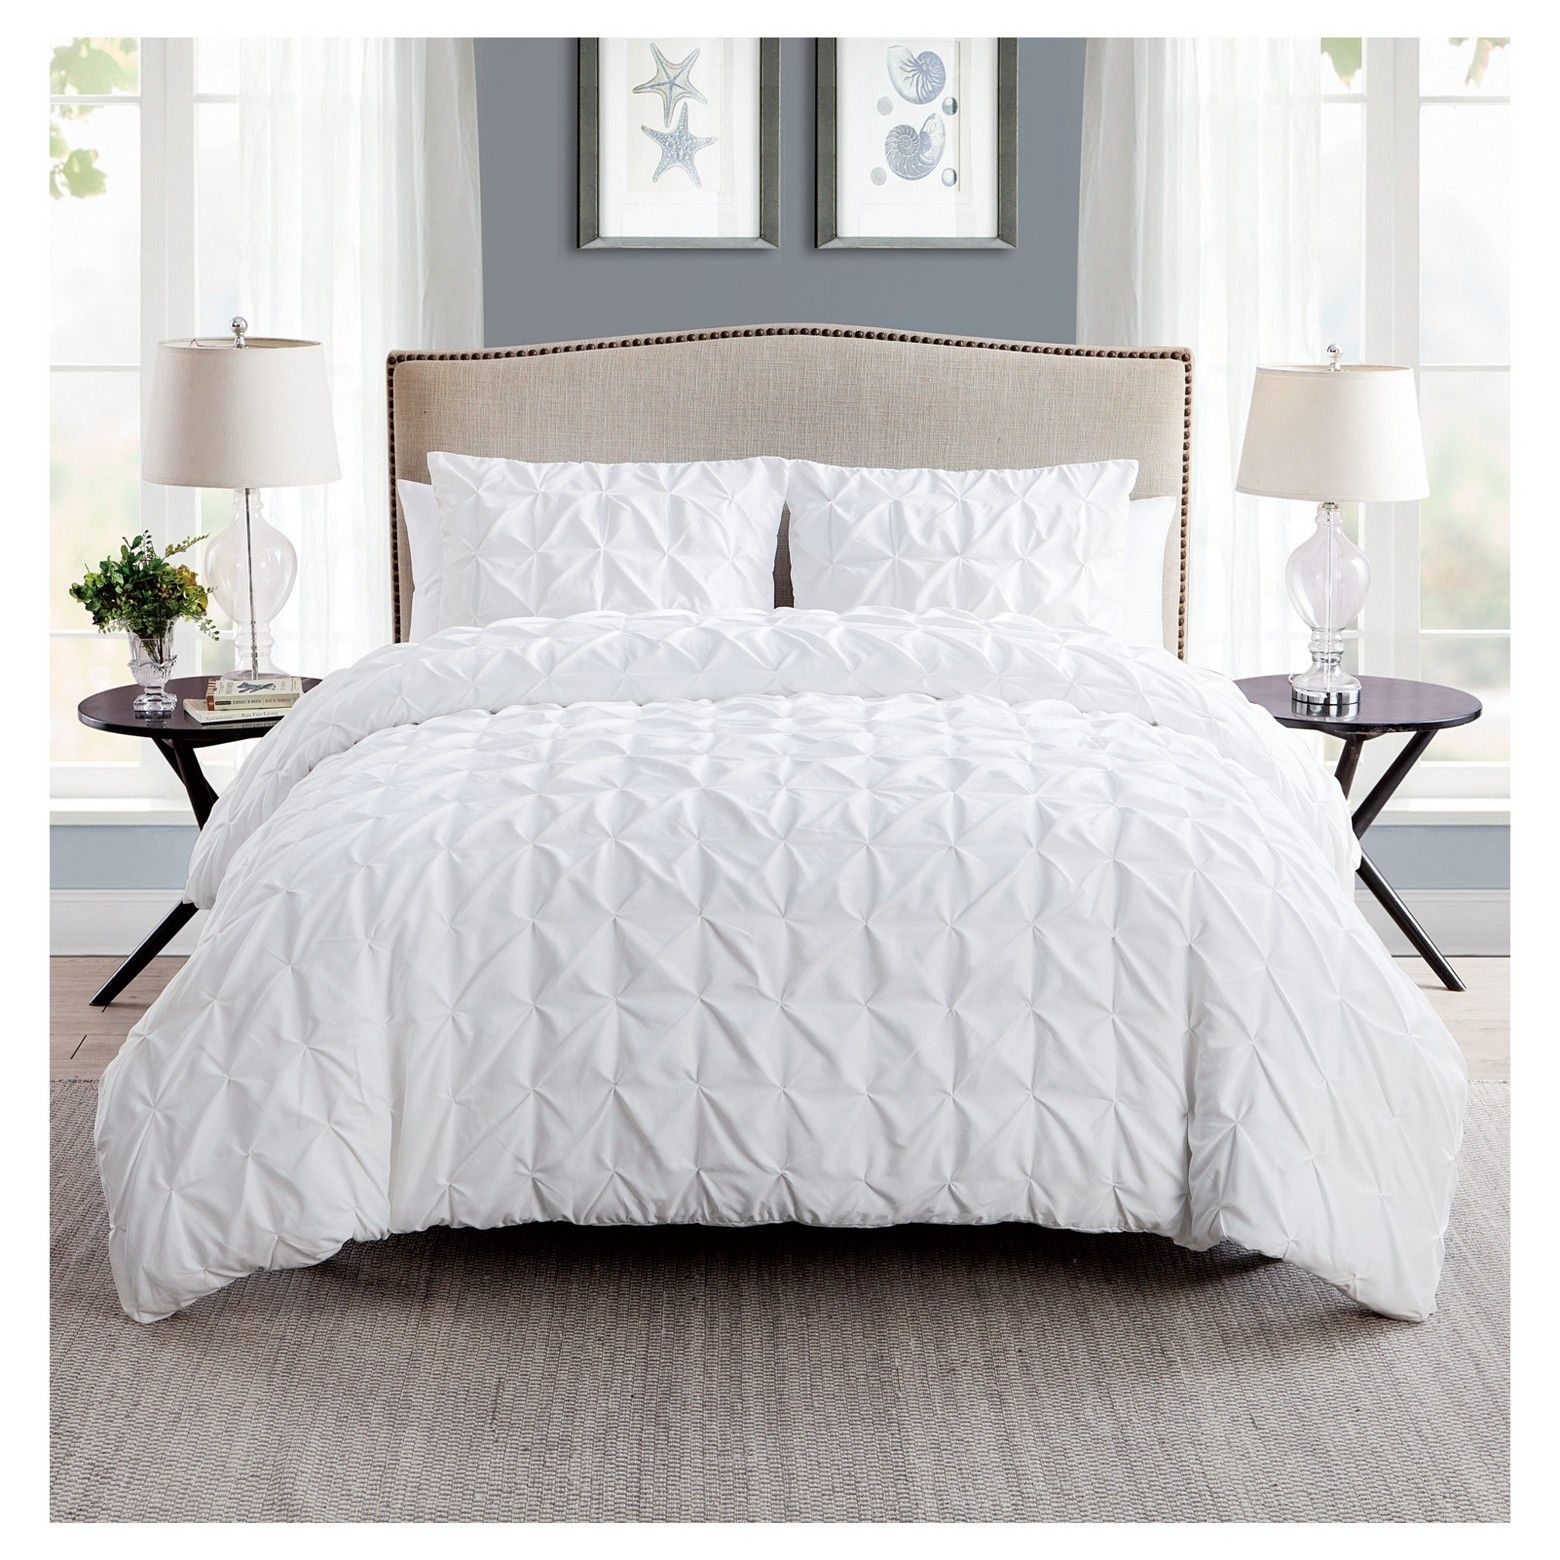 how sew a bed for bedroom furniture ideas with beautifull duvet cover dark pintuck pillow white pleated and to your traditional simple